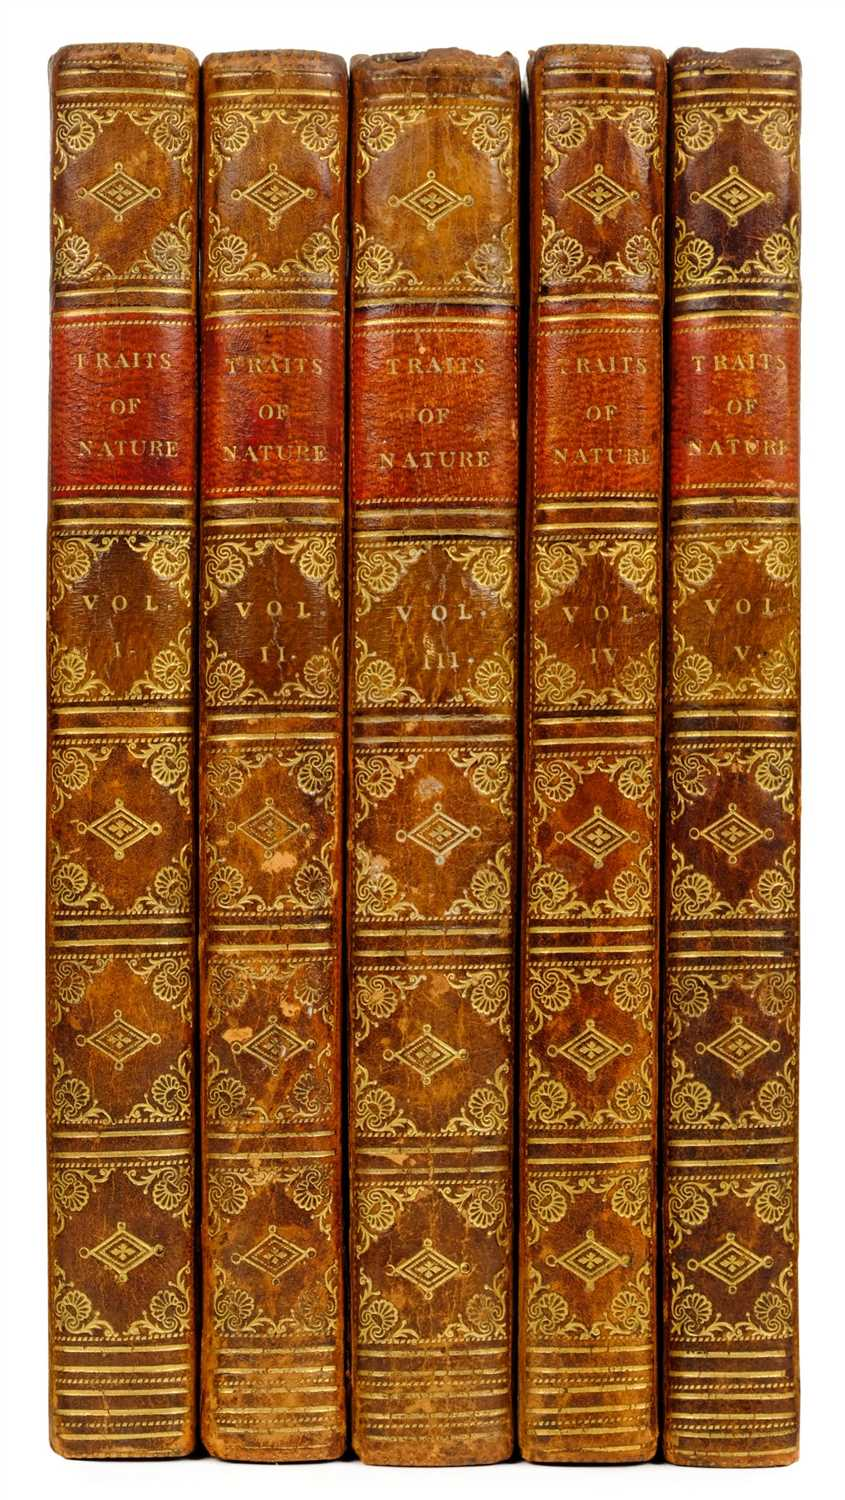 Lot 348 - Burney [Sarah Harriet]. Traits of Nature, 5 volumes, 1st edition, for Henry Colburn, 1812